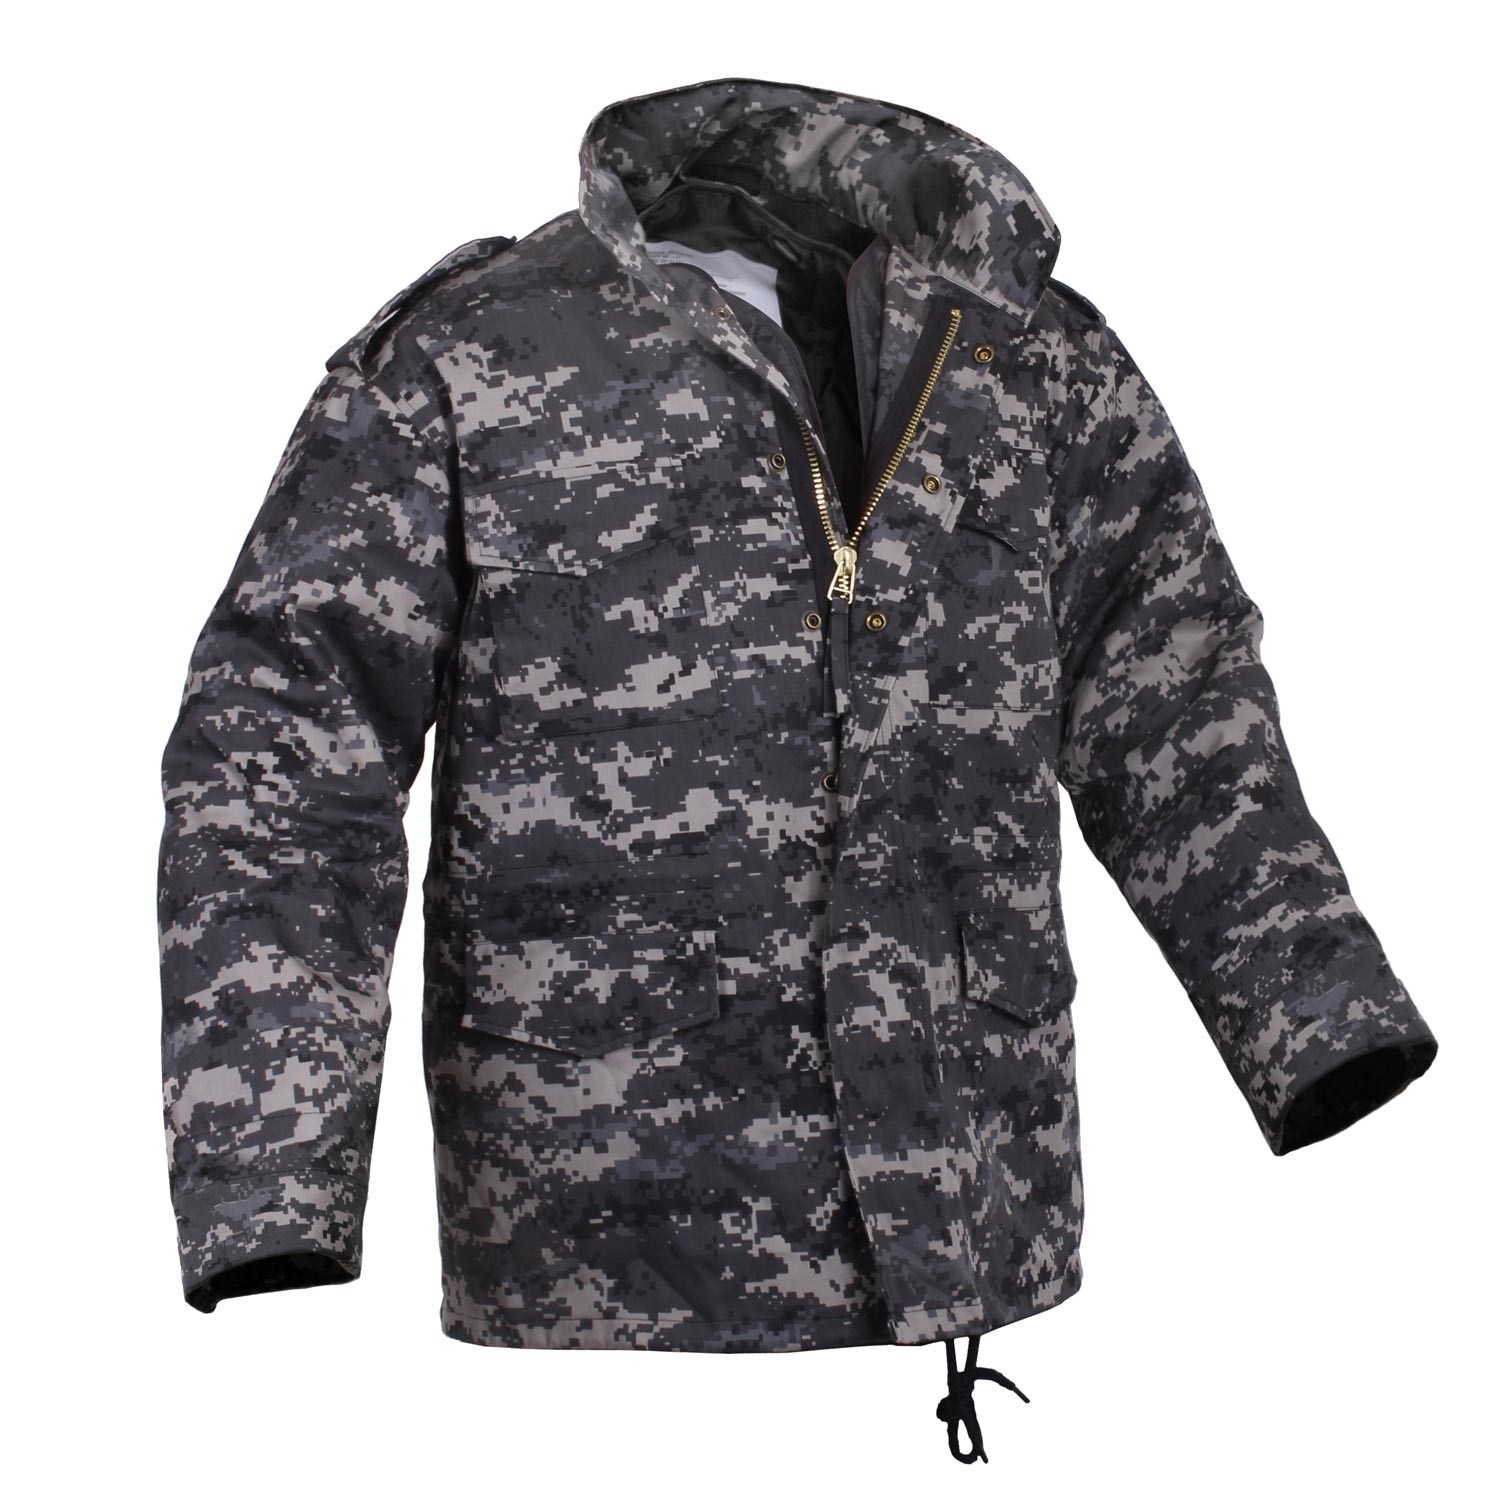 M-65 URBAN DIGITAL jacket with the liner ROTHCO 8717 L-11